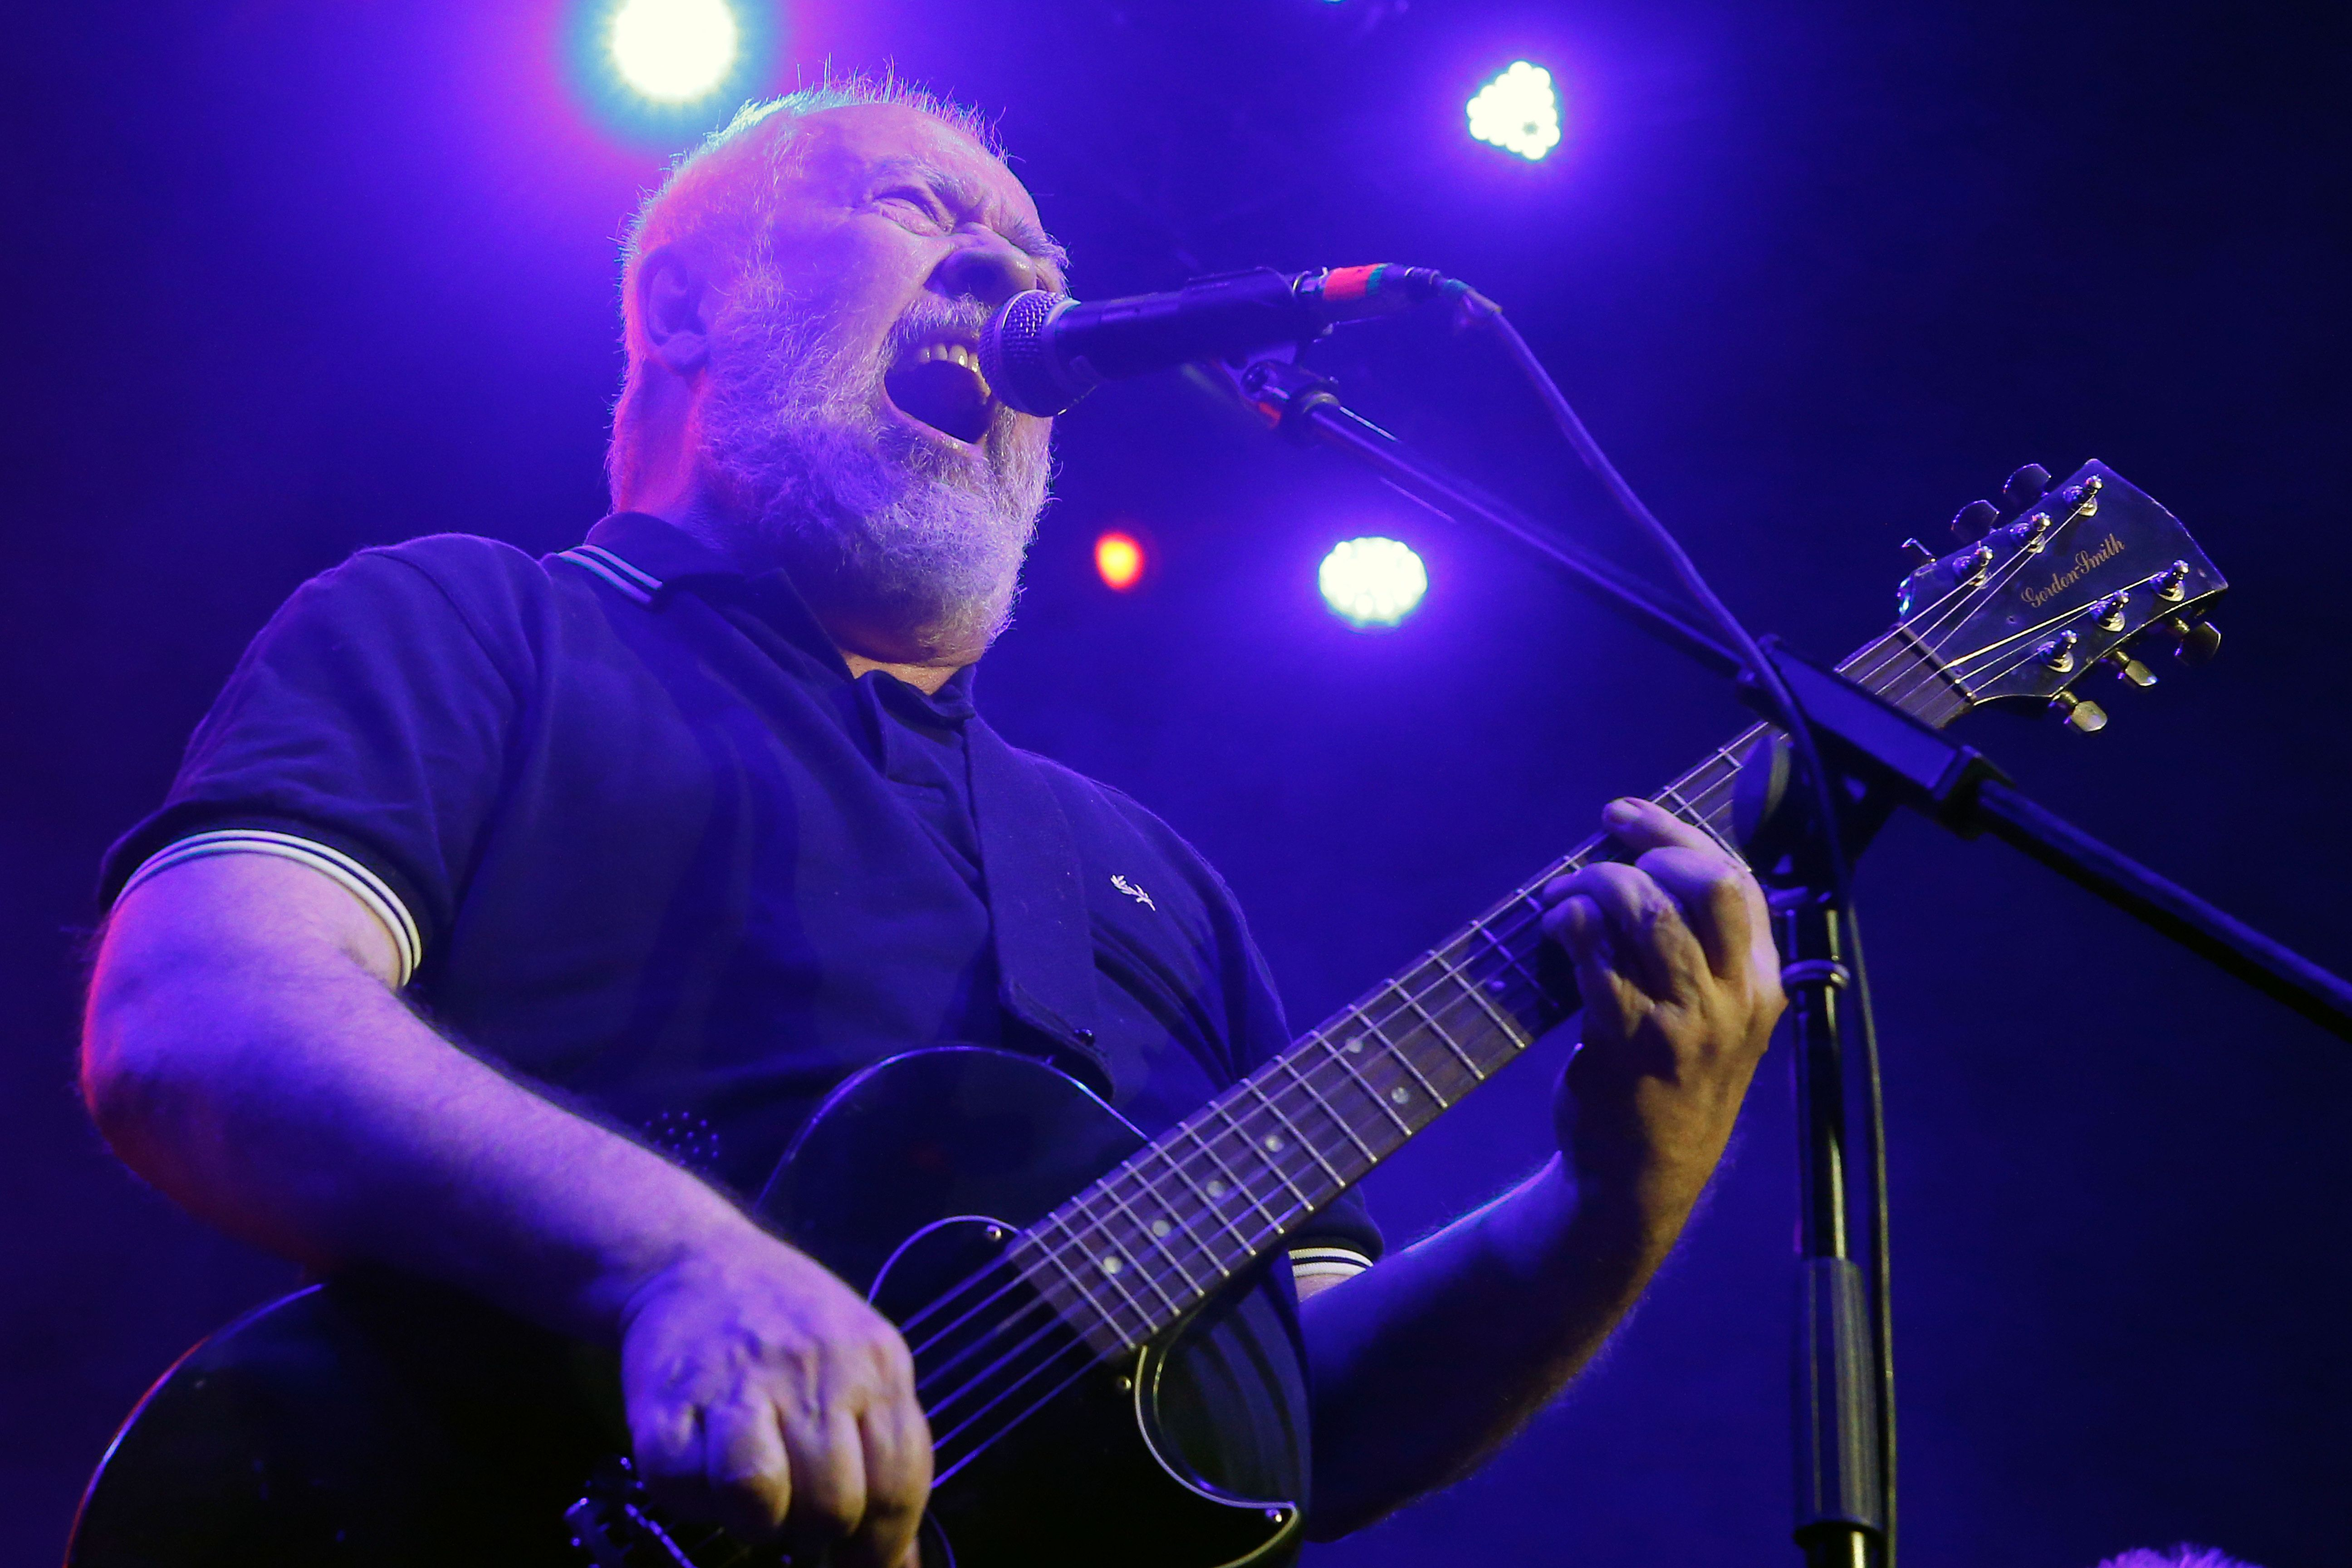 Frontman Pete Shelley of the British punk band Buzzcocks, performs at Plaza Condesa in the 6th edition of the Marvin Festival, in Mexico City, Saturday, May 19, 2018. (AP Photo/Marco Ugarte)